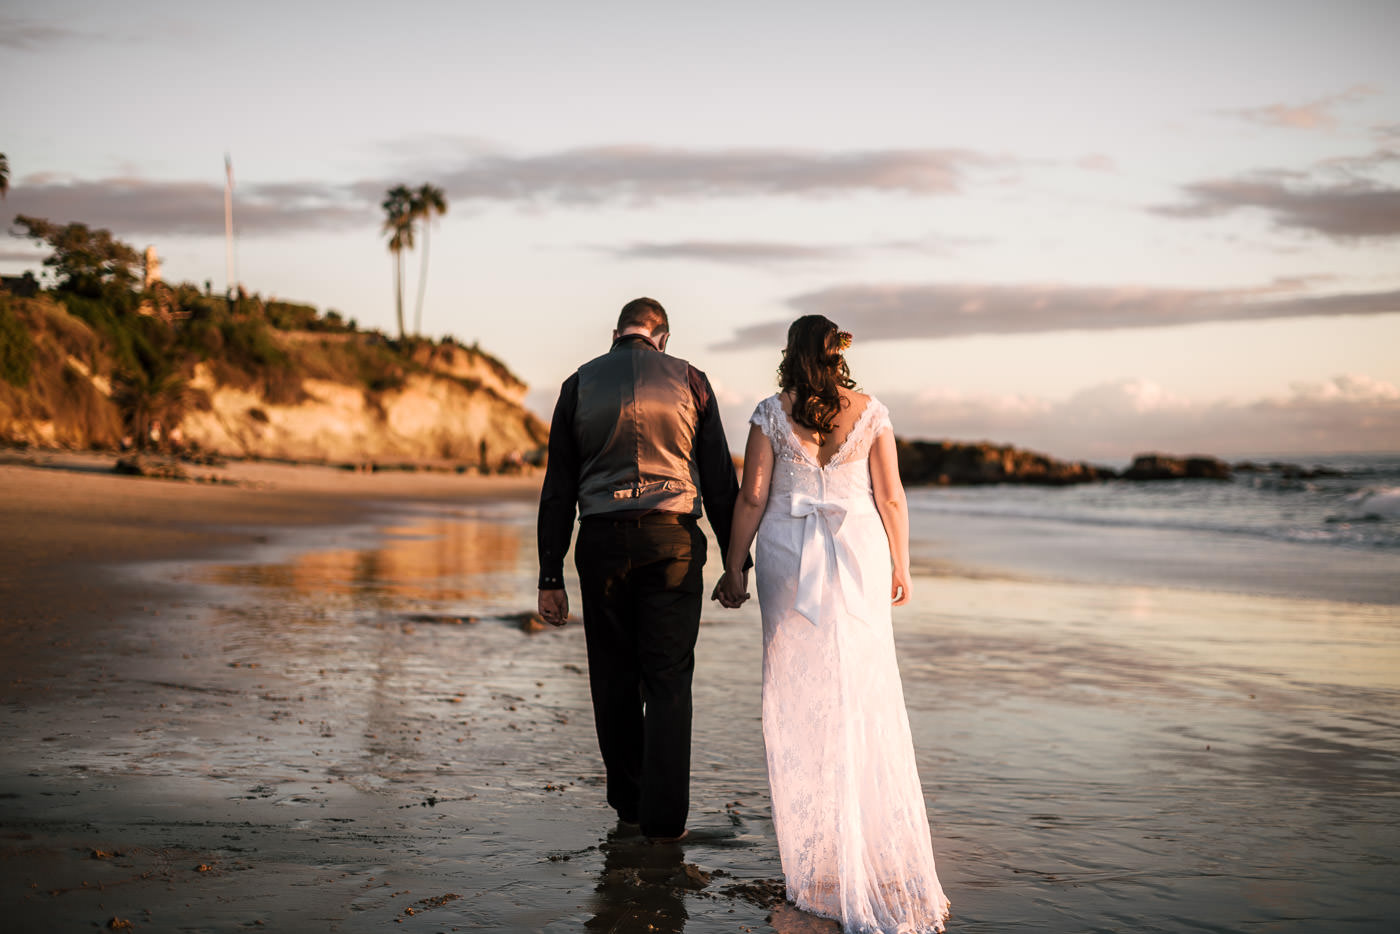 Couple walks barefoot in the wet sand after their Laguna Beach wedding.